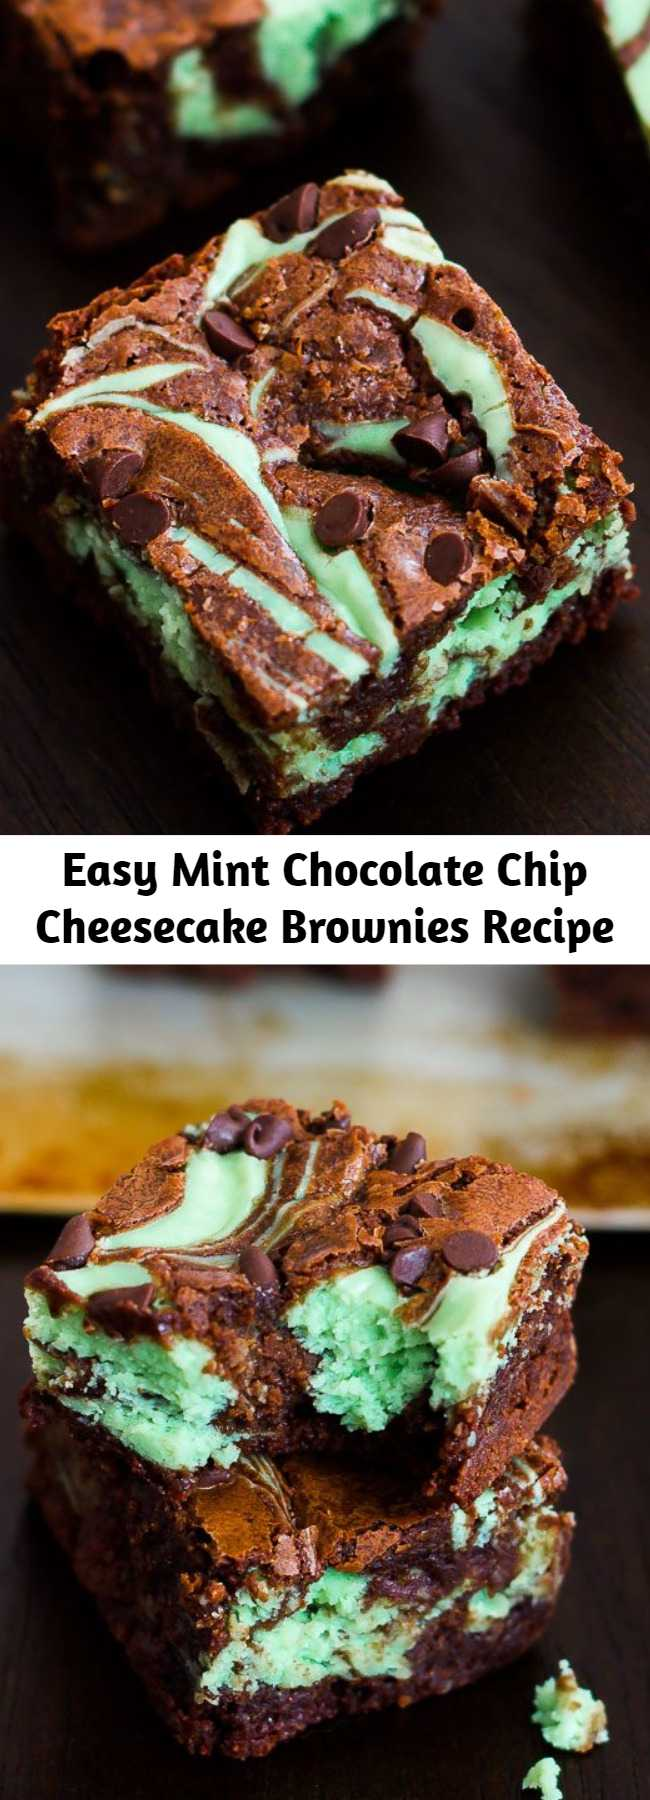 Easy Mint Chocolate Chip Cheesecake Brownies Recipe - Swirly, twirly, fudgy, minty, cheesecake goodness. I love these decadent mint chocolate brownies!